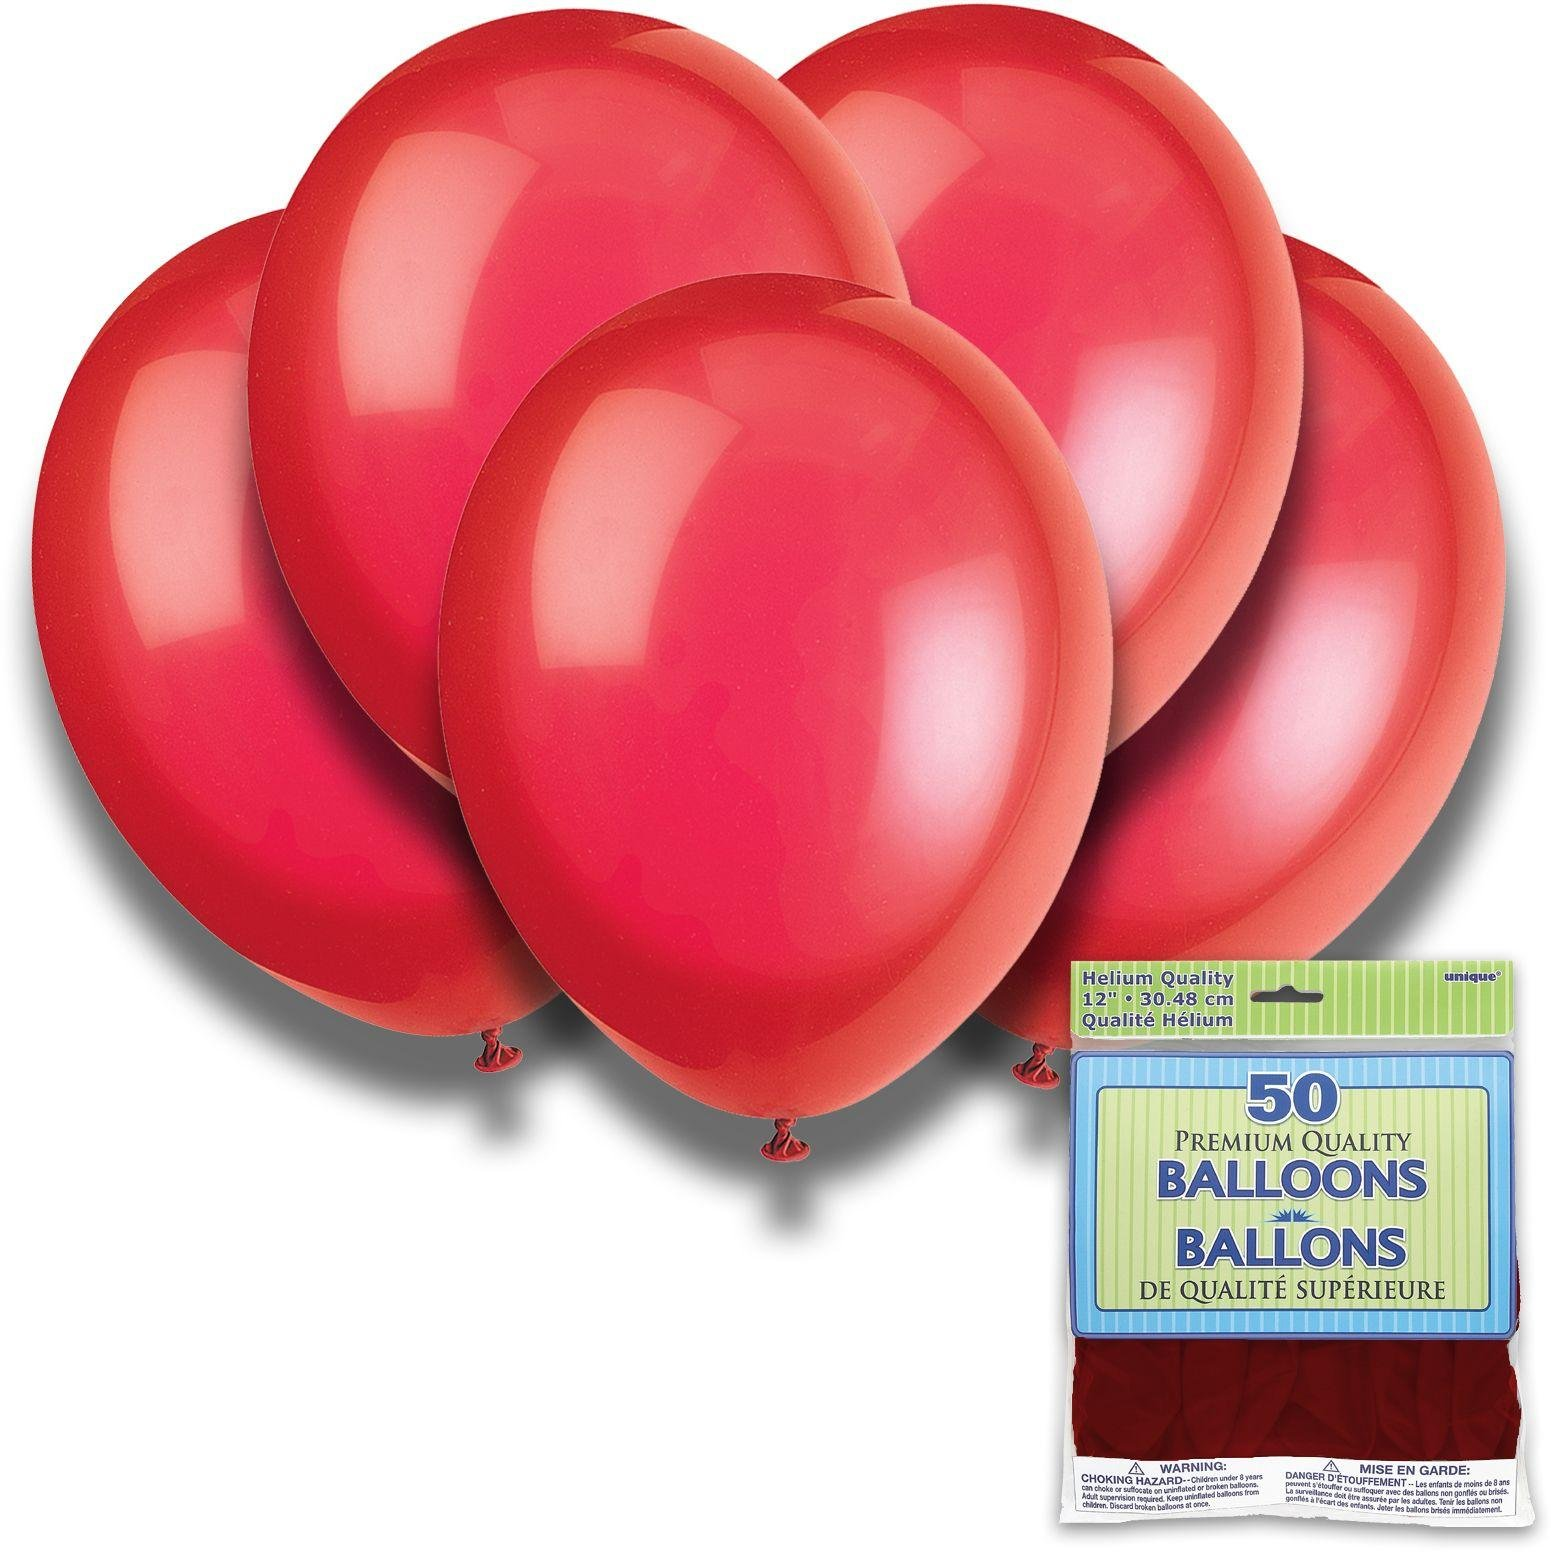 Argos - Scarlet Red - 12 Inch Premium Balloons - Pack of...